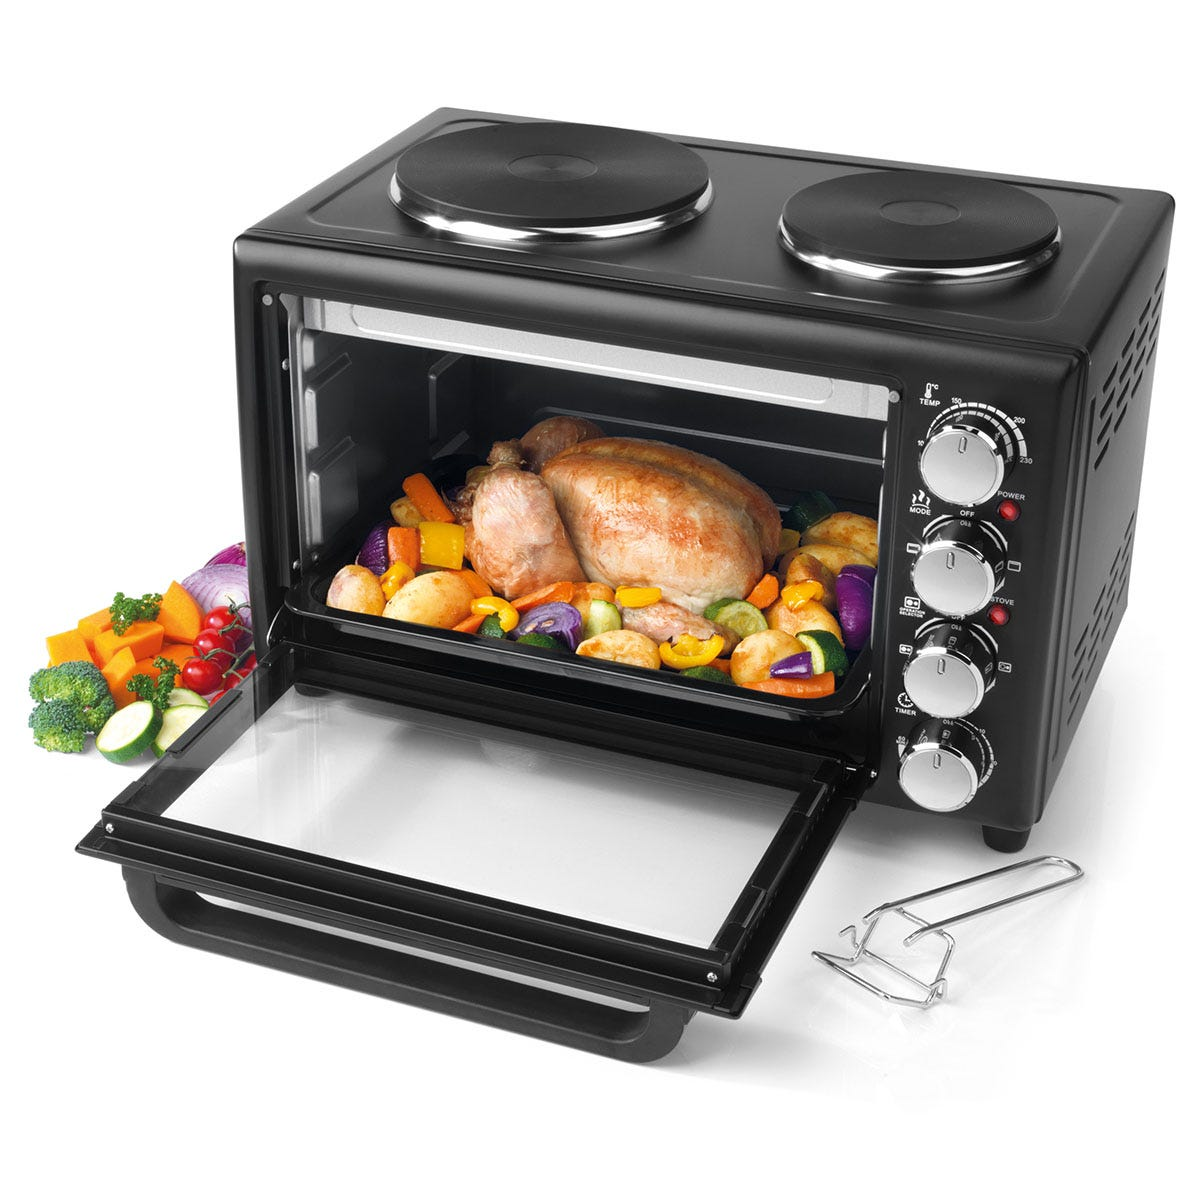 Salter 28L Mini Toaster Oven with 2 Hobs - Black